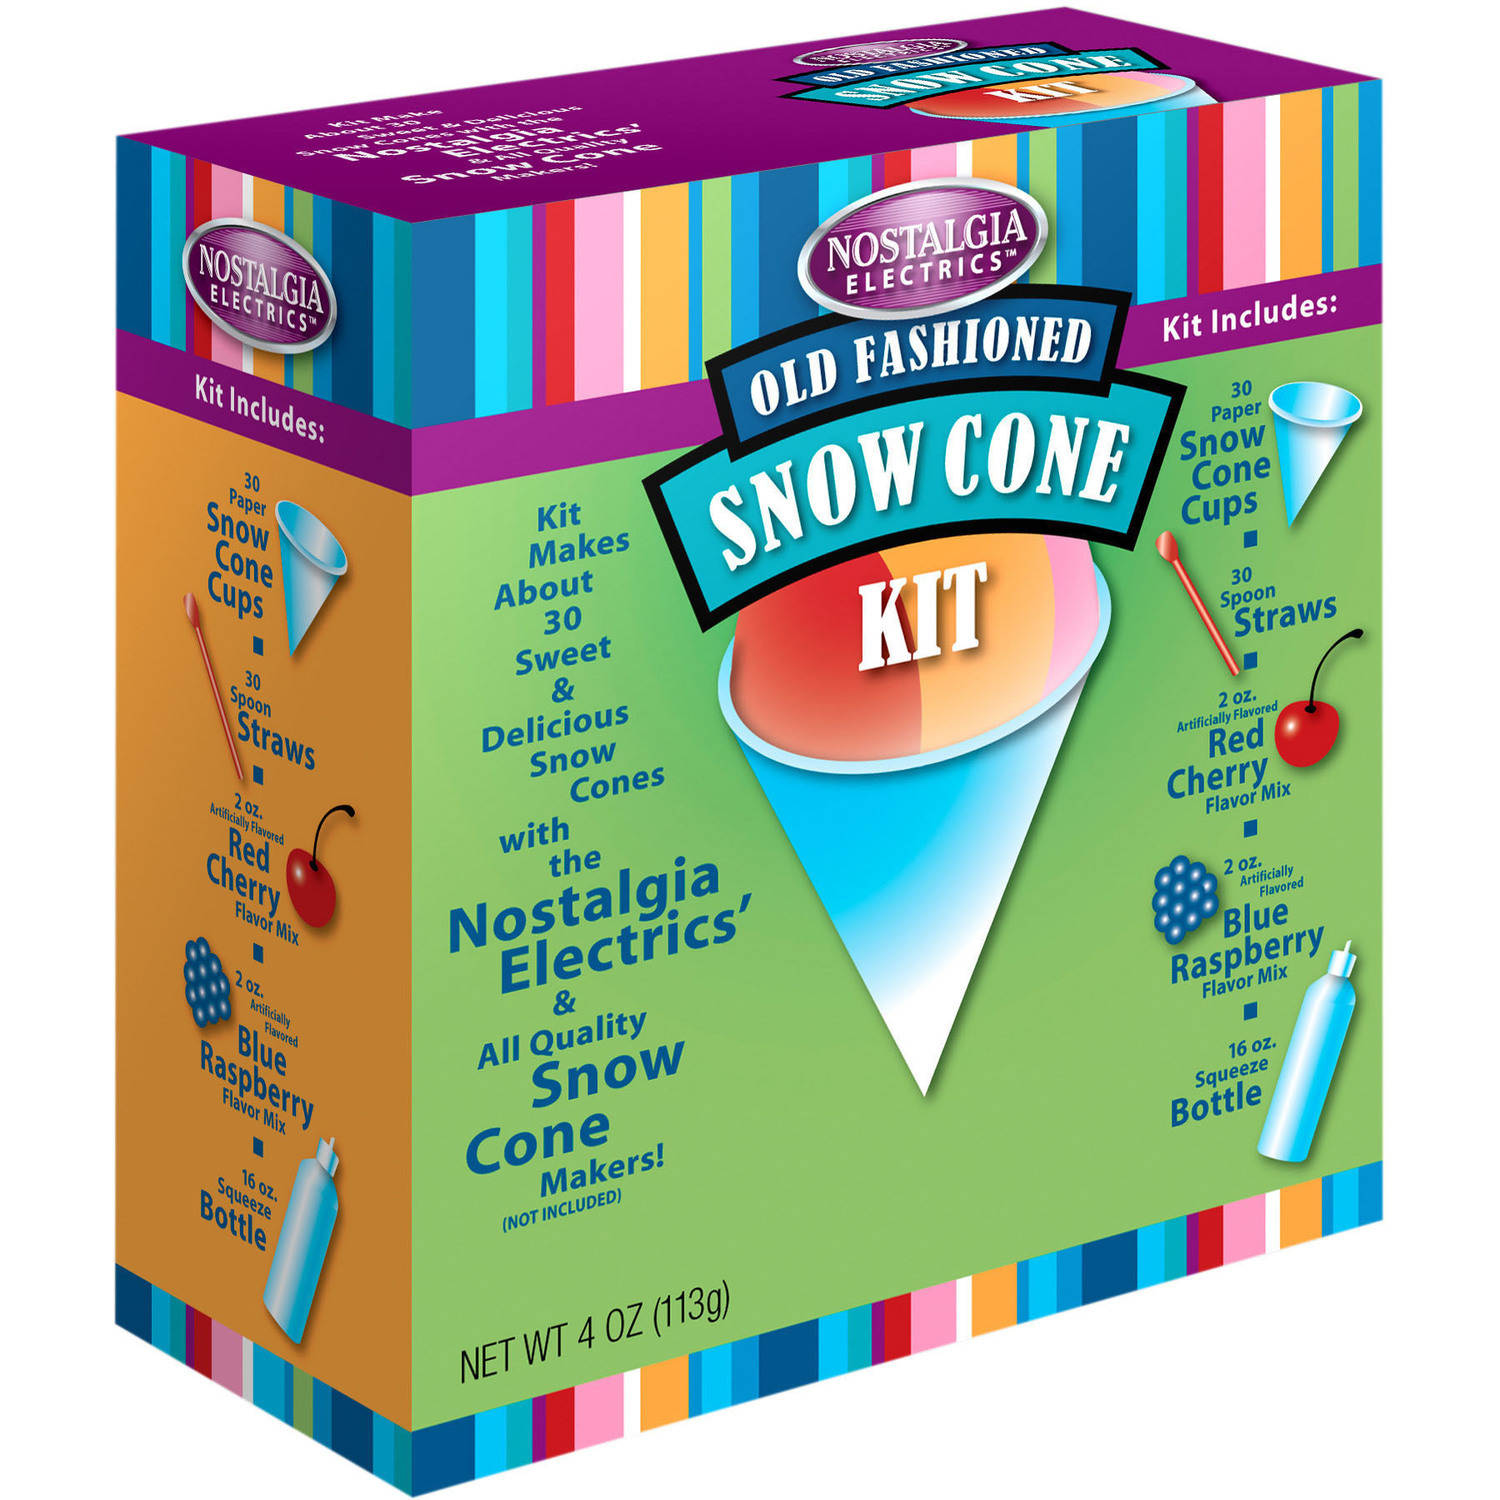 Nostalgia SCK800 Snow Cone Kit